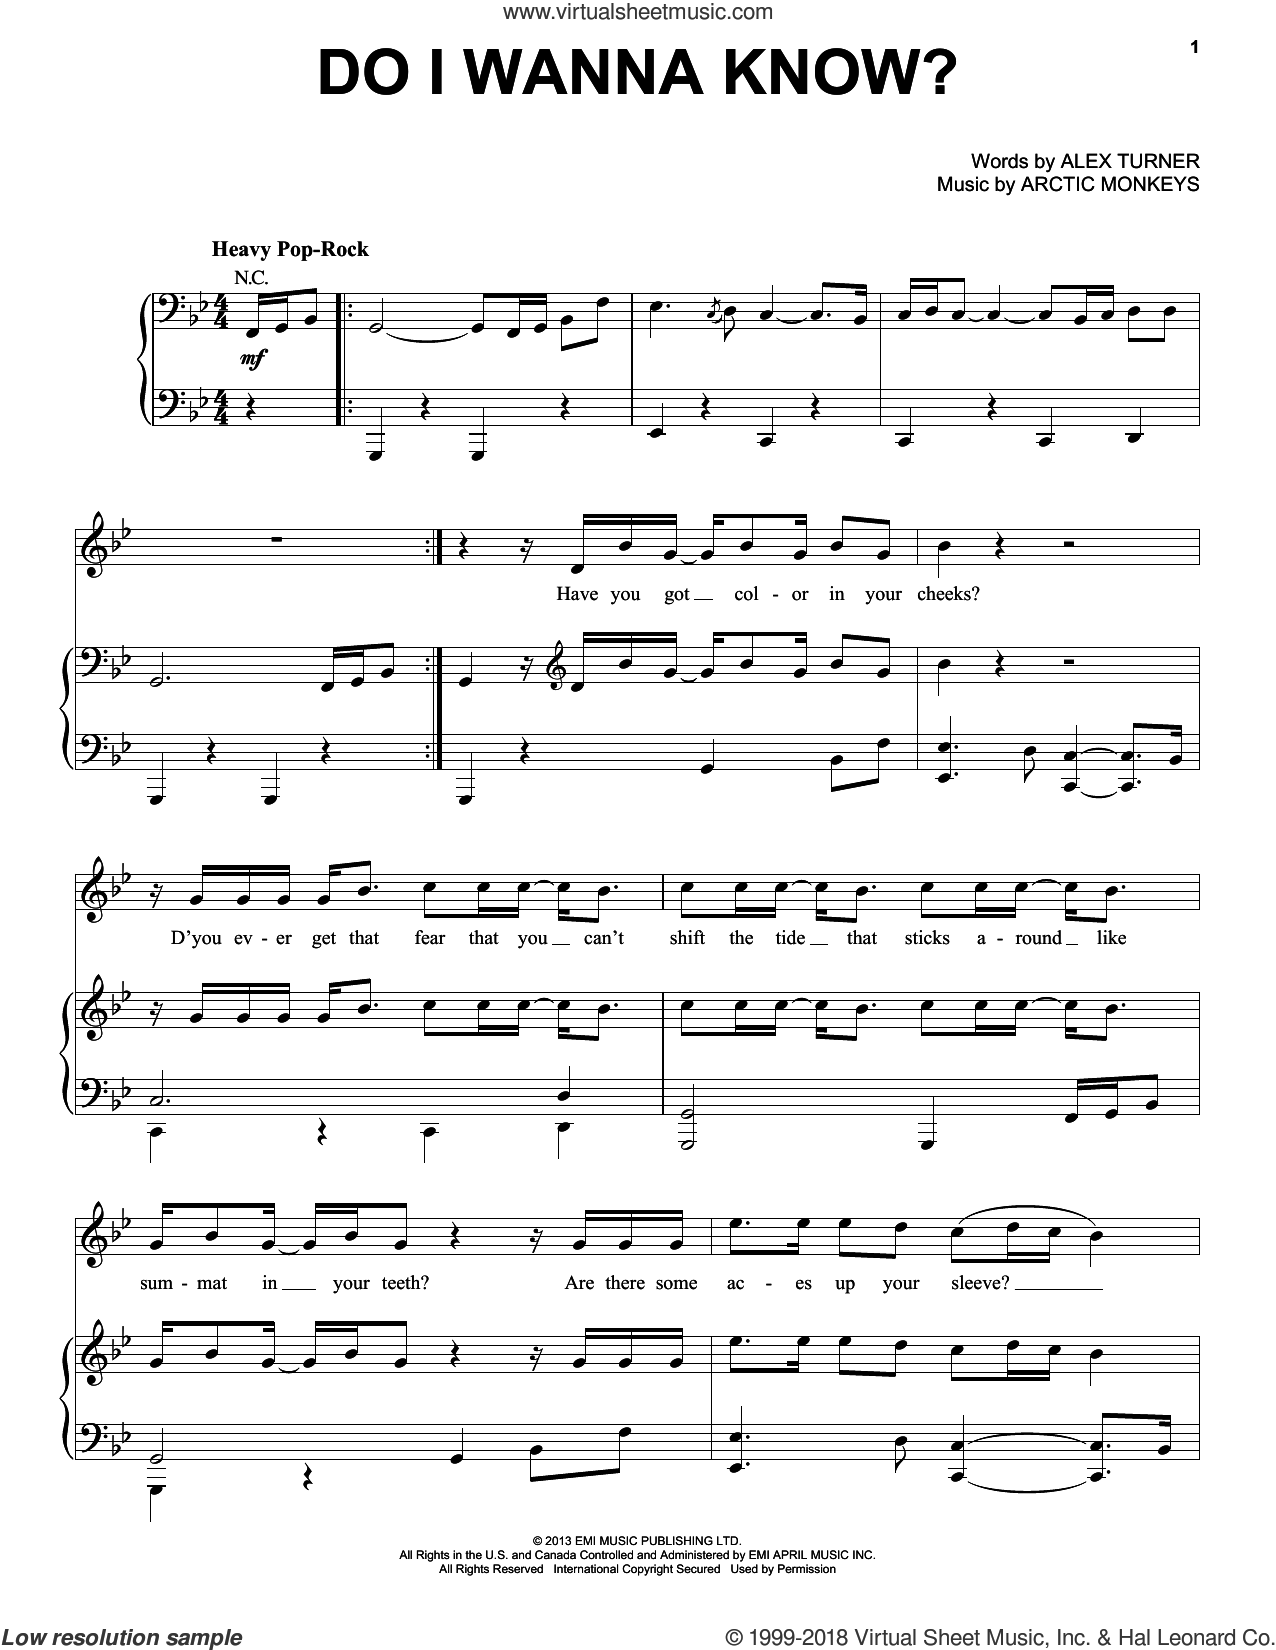 Do I Wanna Know? sheet music for voice, piano or guitar by Arctic Monkeys and Alex Turner, intermediate skill level